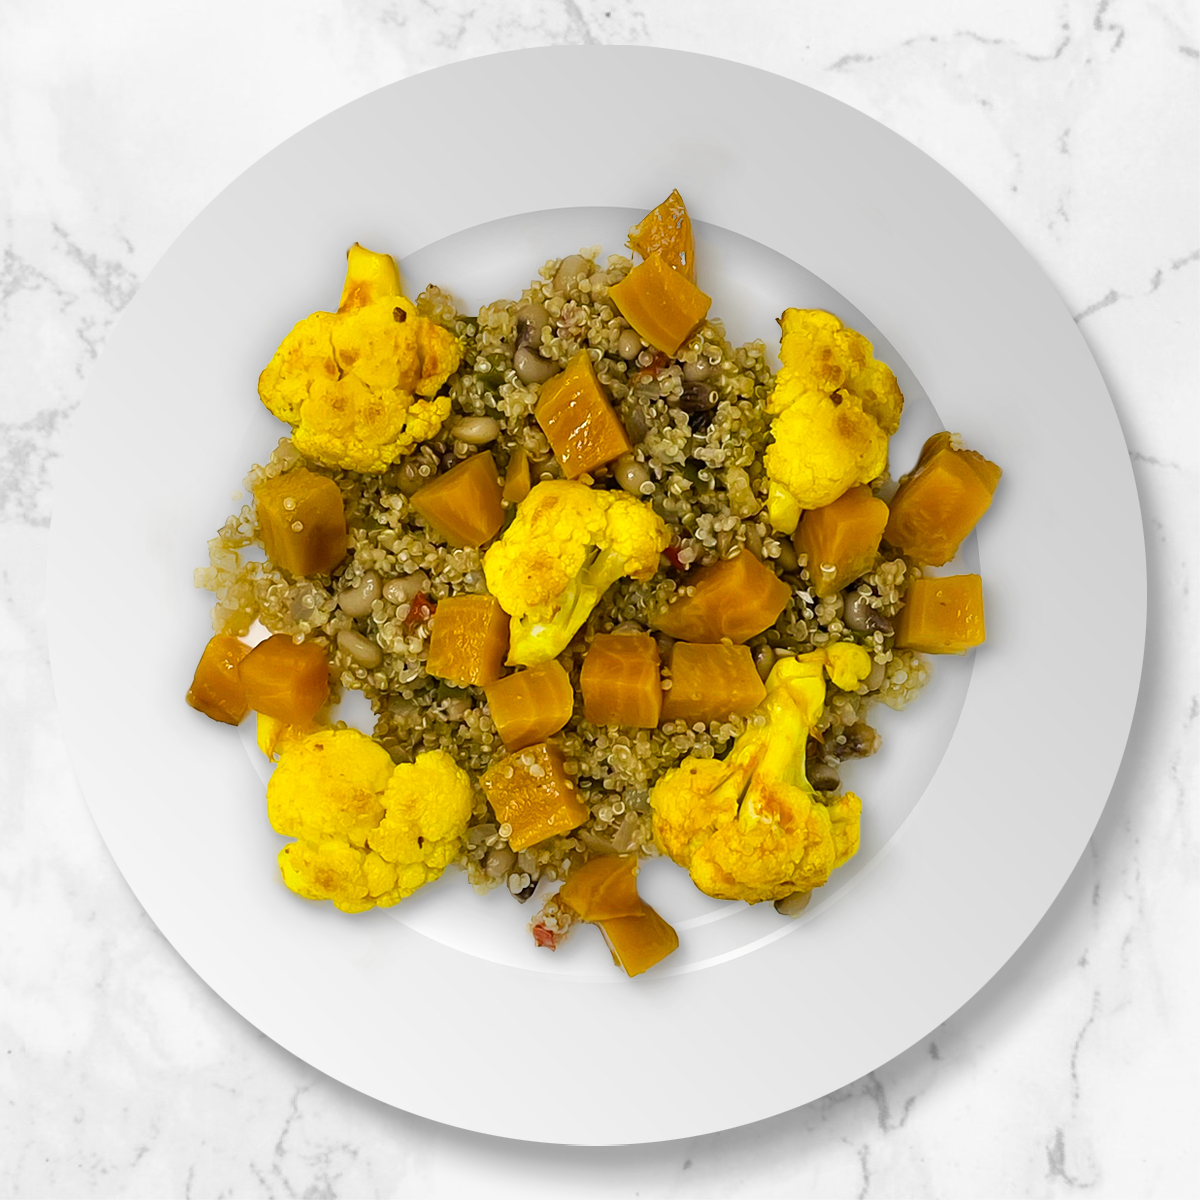 Quinoa Hoppin John, Spiced Cauliflower, Gold Beets